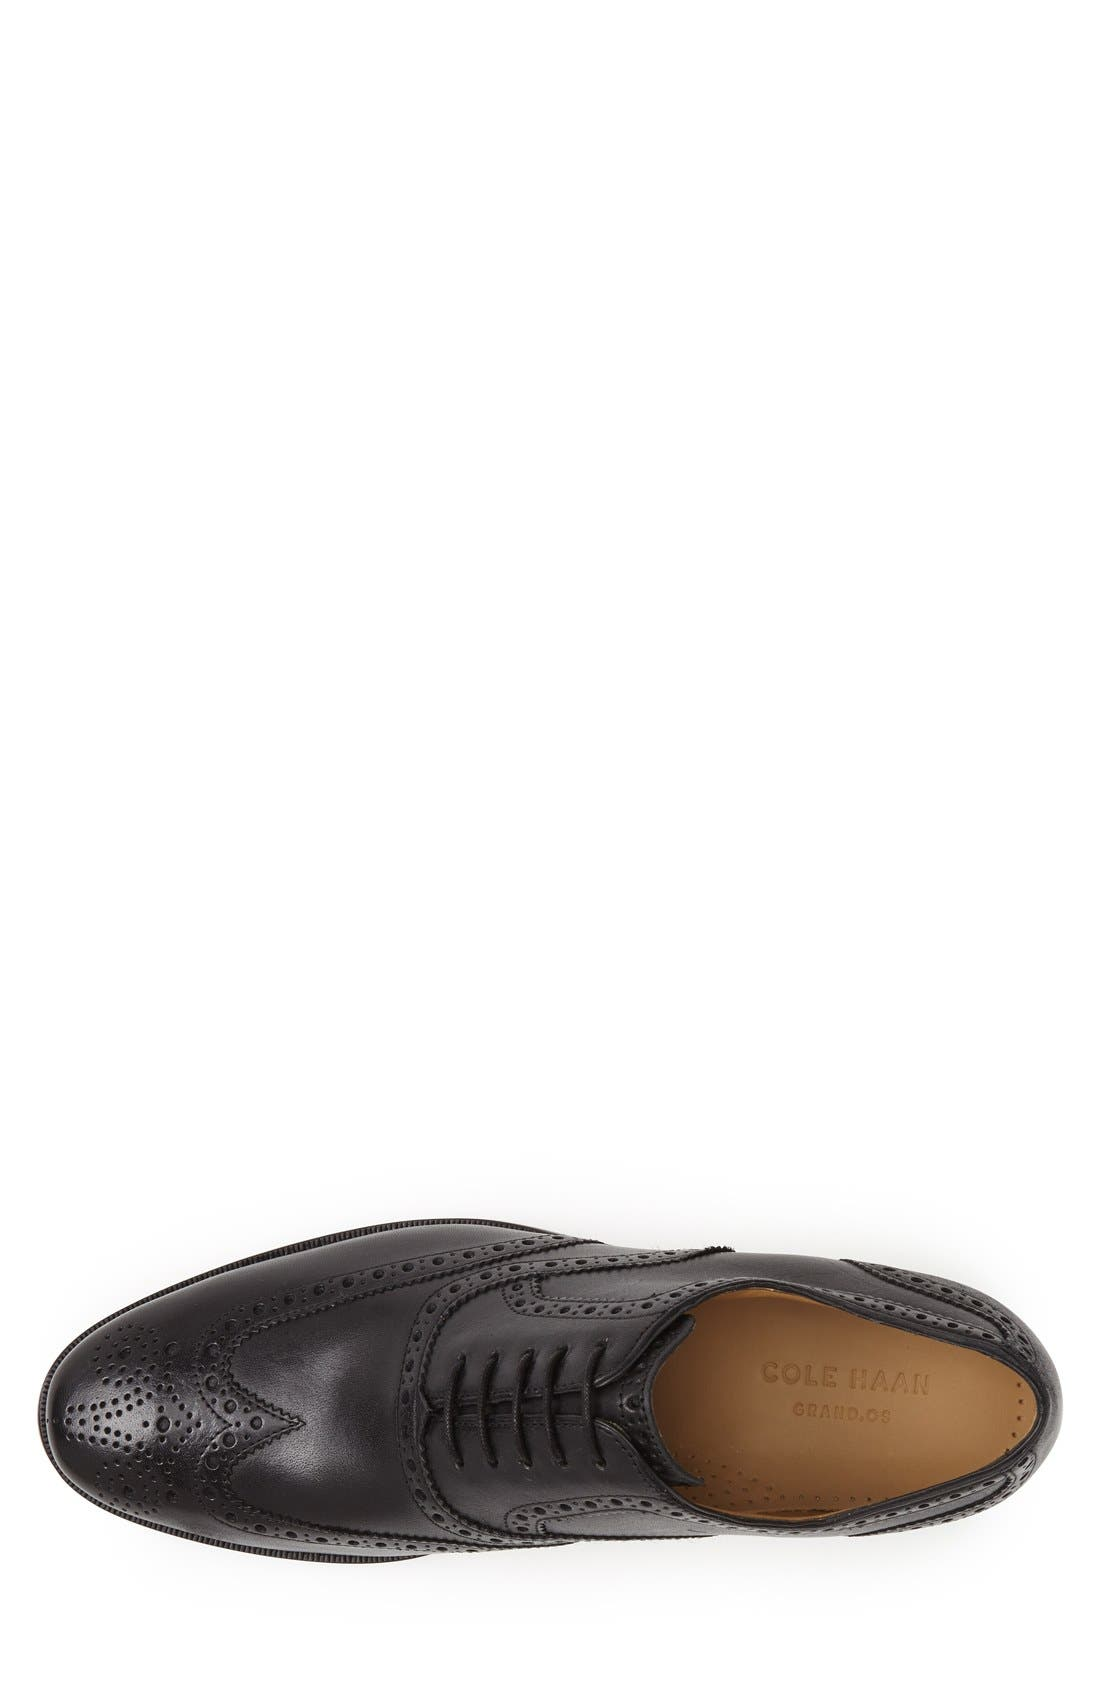 'Cambridge' Wingtip,                             Alternate thumbnail 3, color,                             BLACK